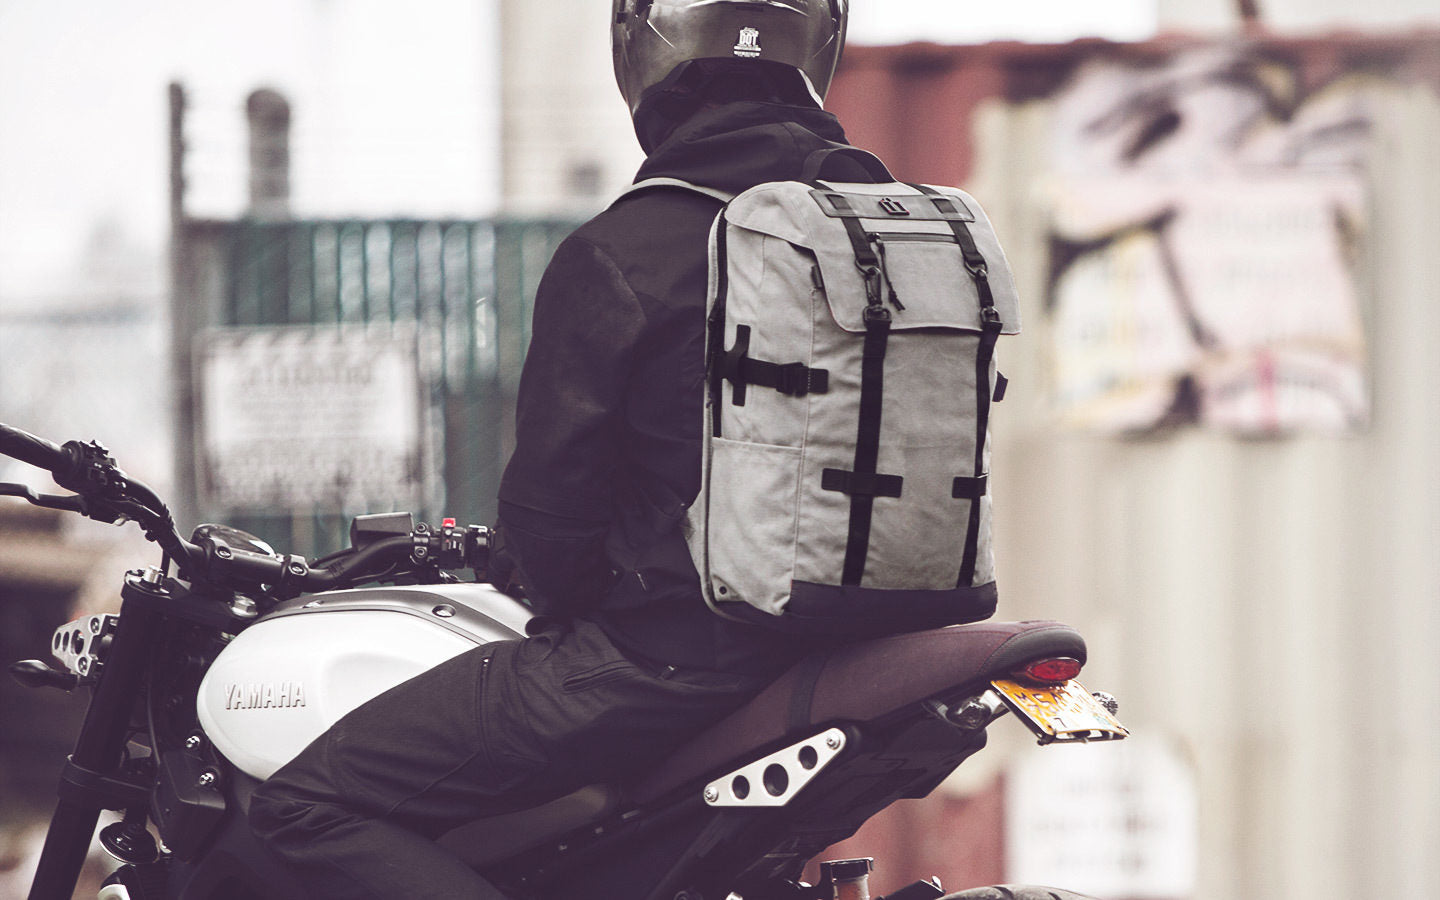 Icon Street 2019 | Rogue Brew Run Motorcycle Gear Collection